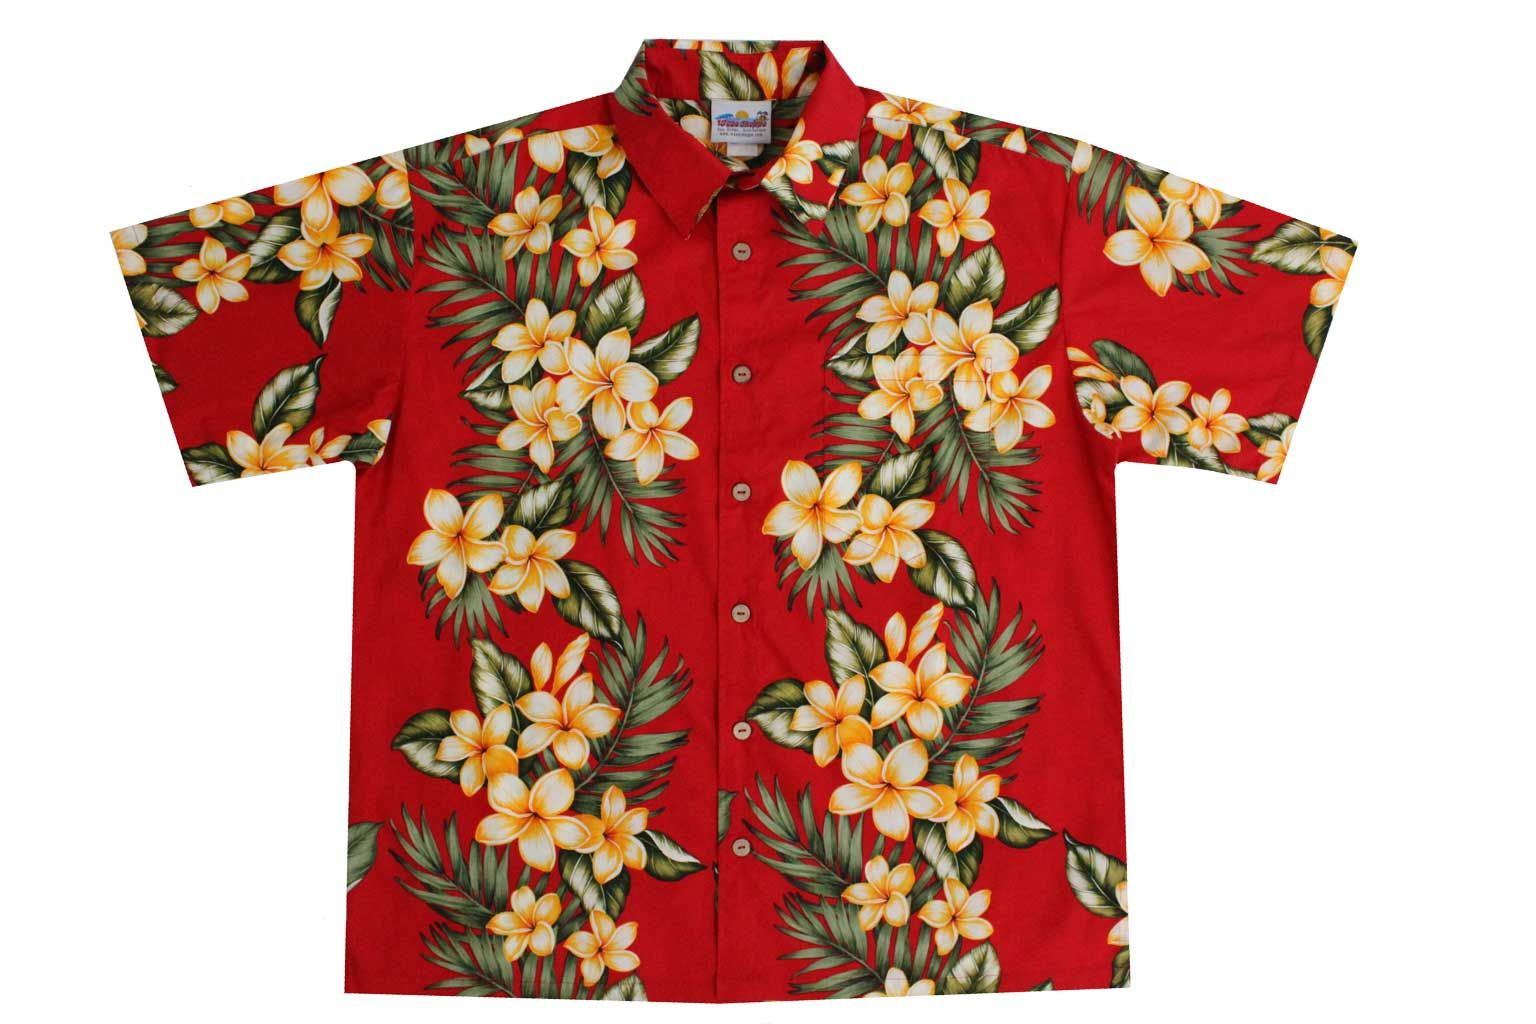 aace2cb1 Cheap Bulk Hawaiian Shirts - DREAMWORKS